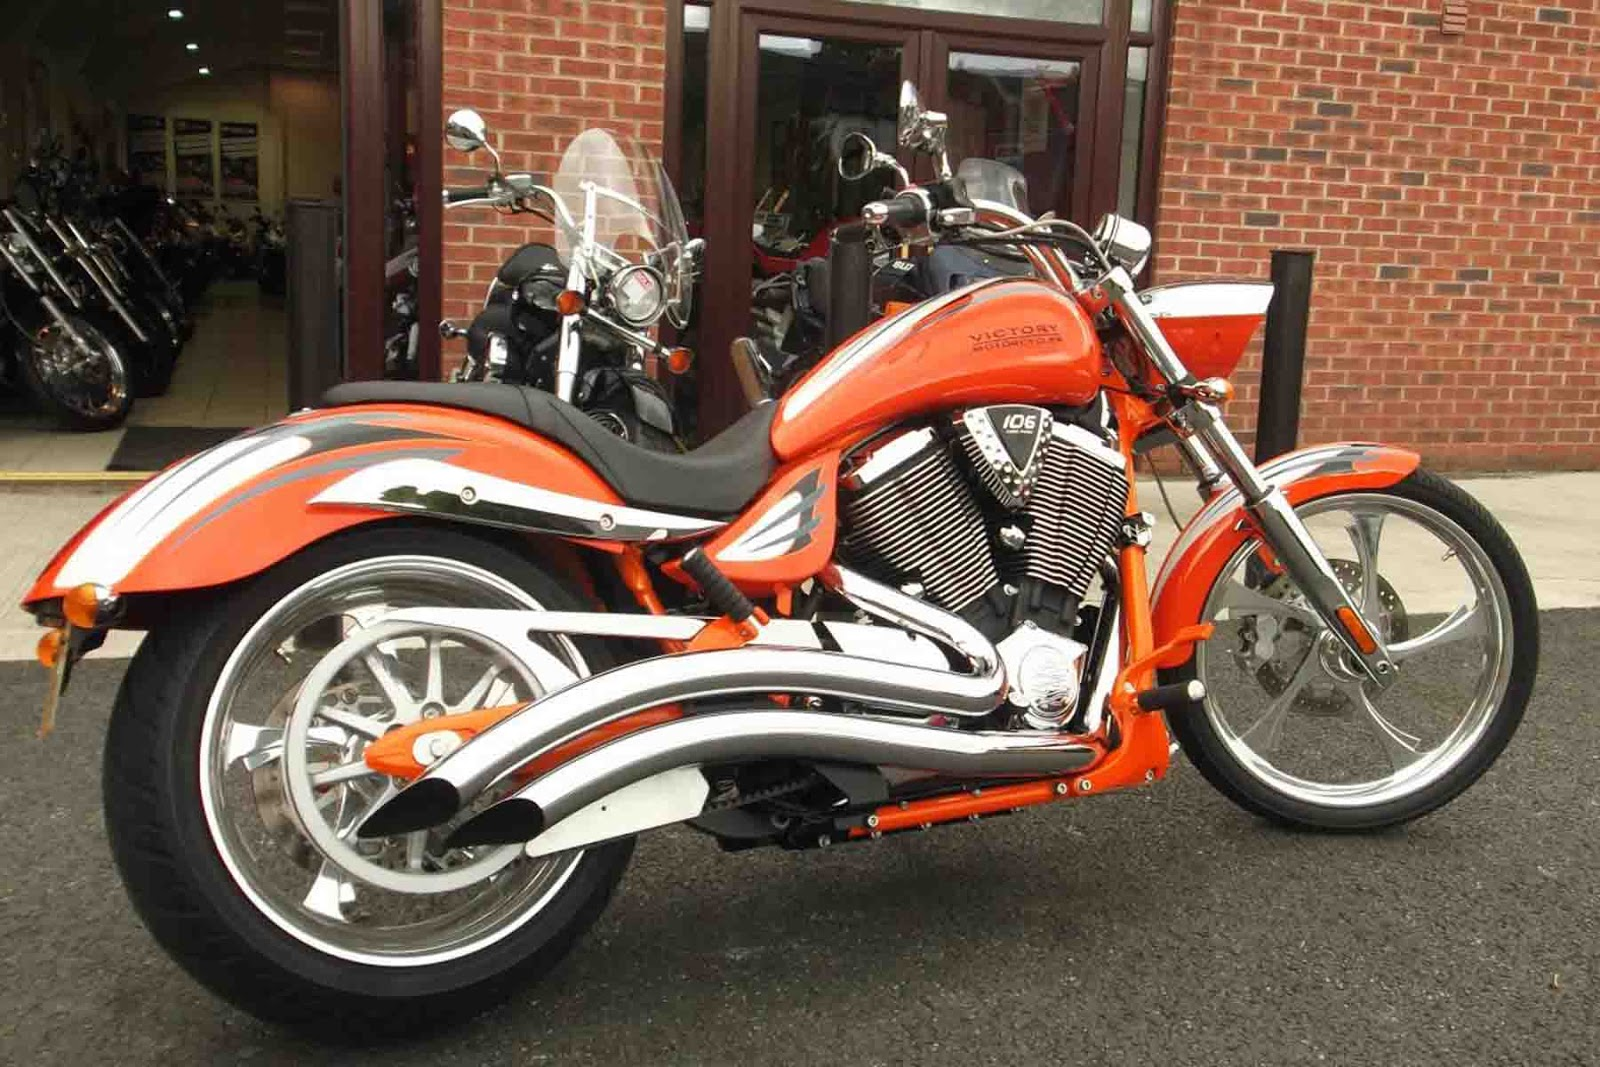 V-Twin, air / oil cooling system, fuel system addapted EFI (Electronic F